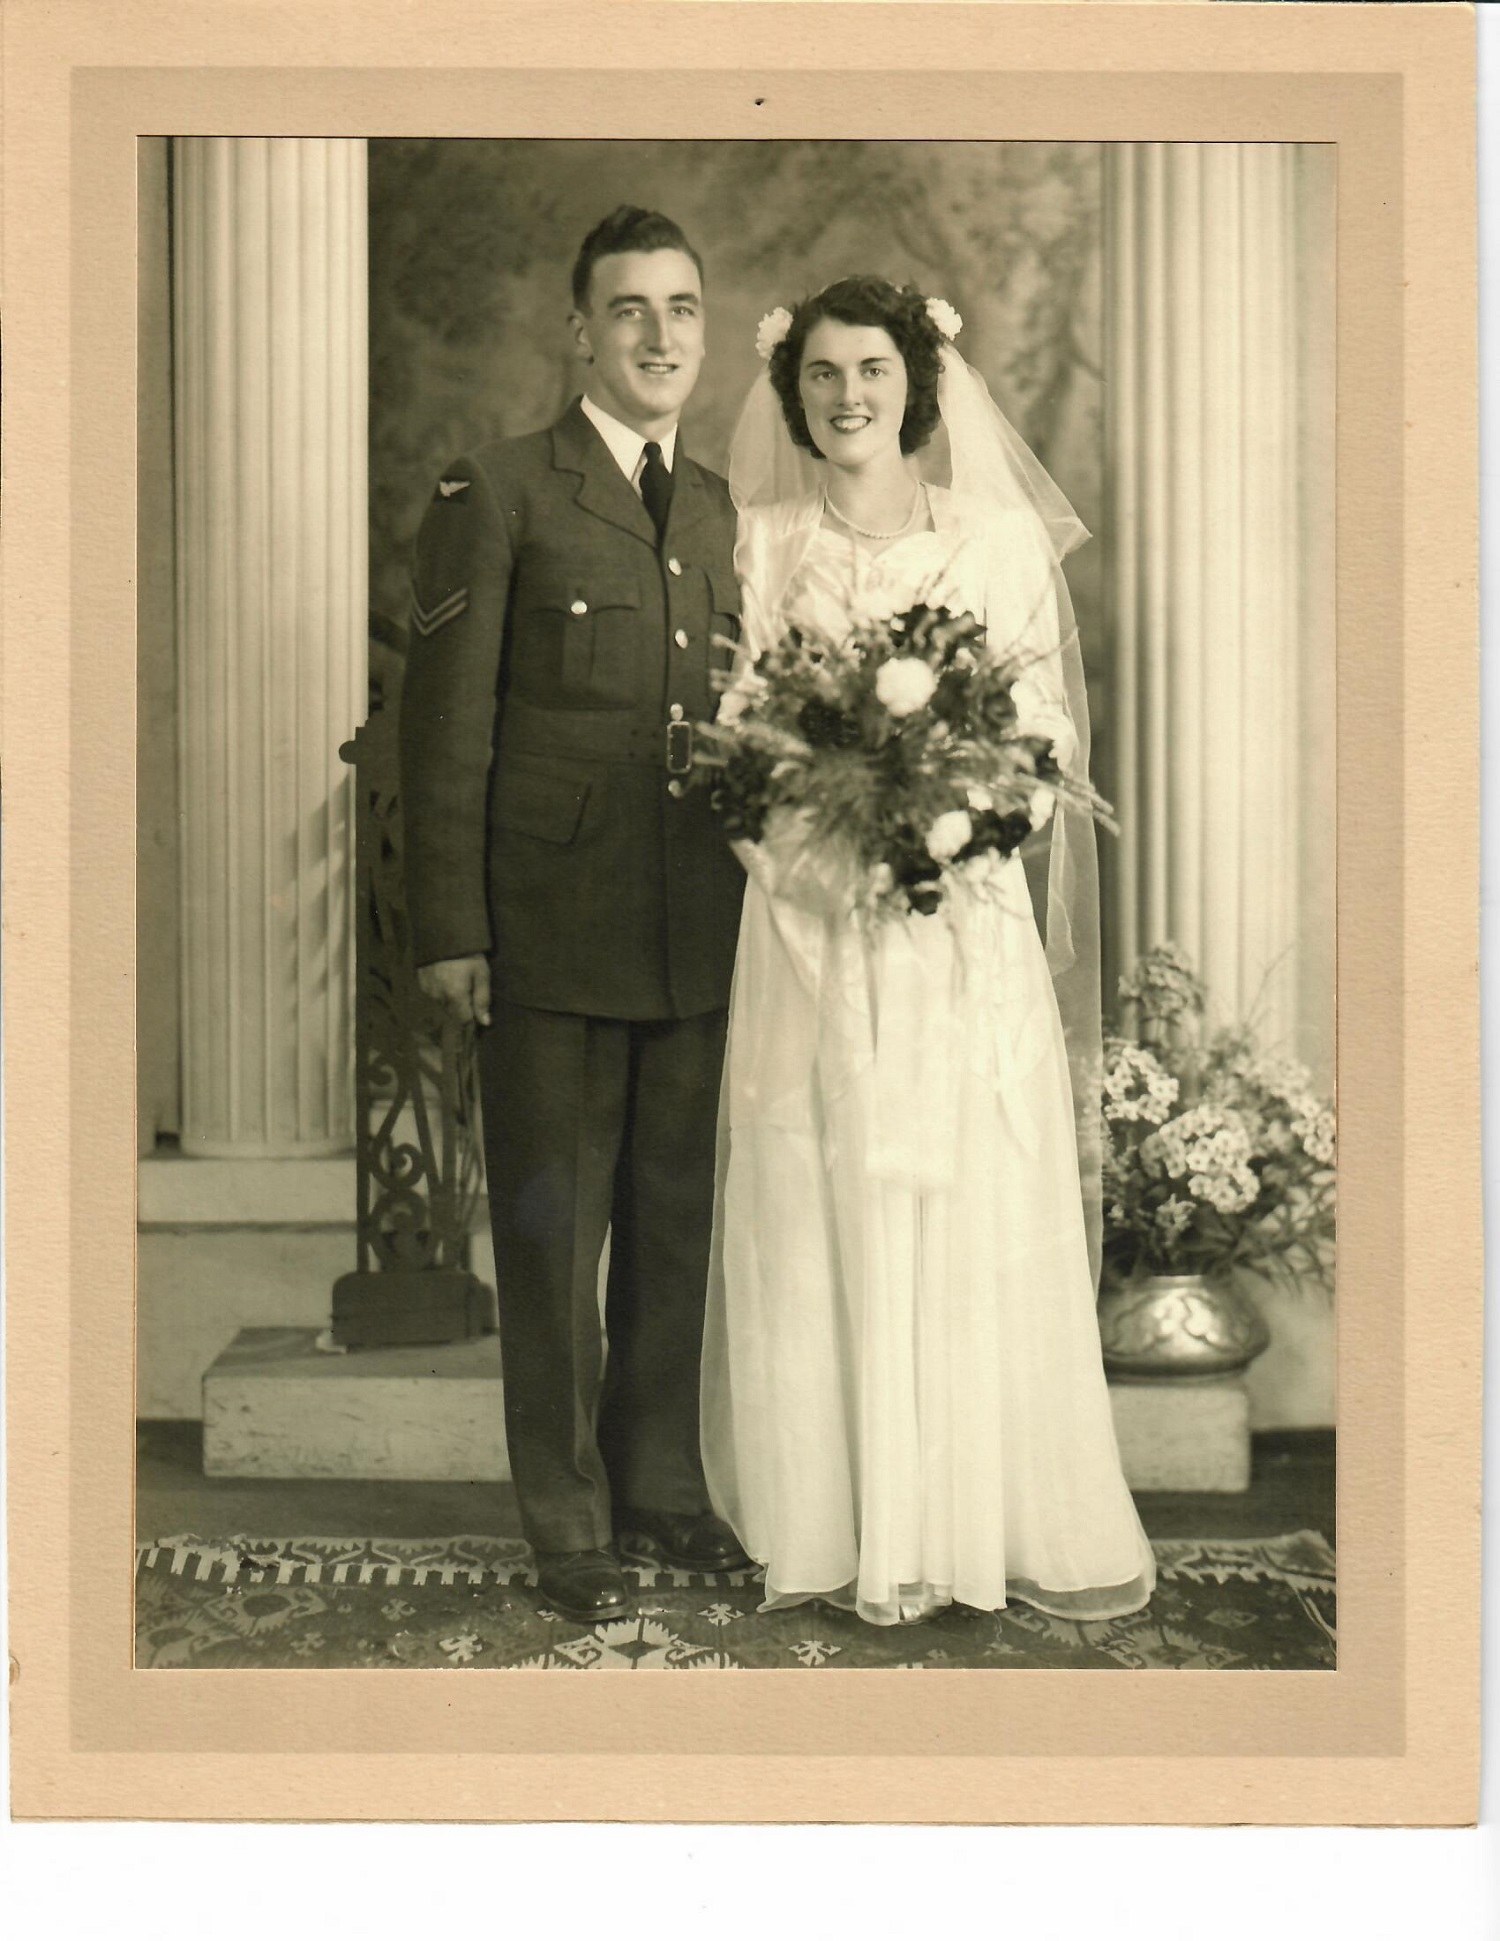 Robert (Bob) and Joan Proctor were married Aug. 15, 1945. (Submitted by Proctor family)